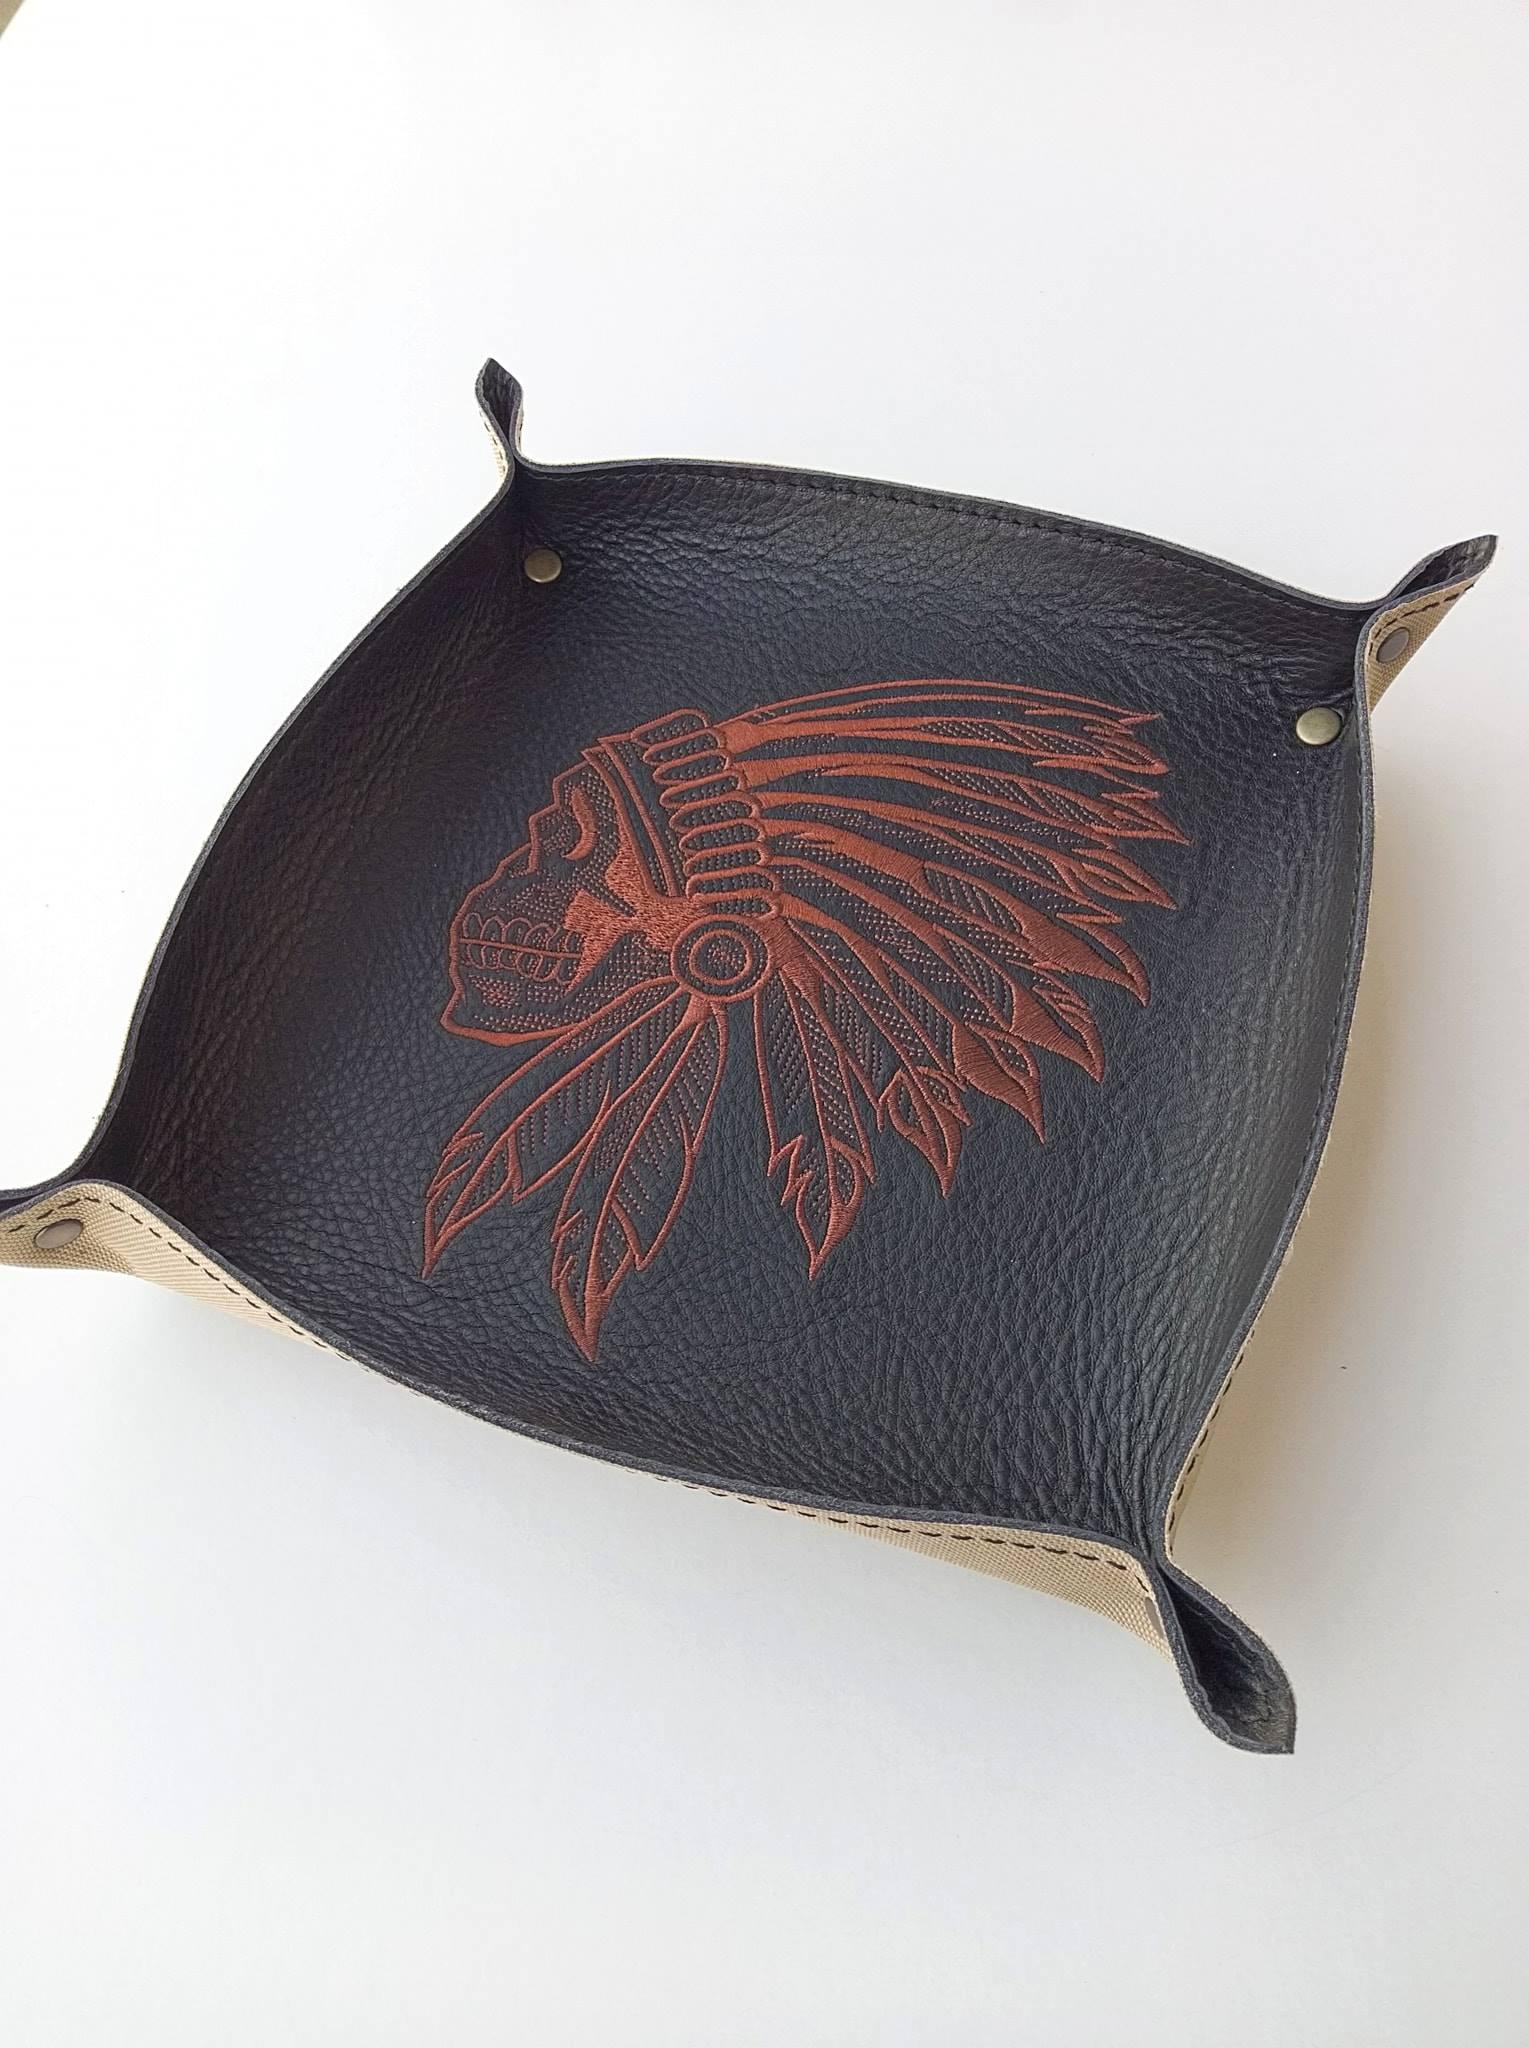 Embroidered leather plate with Indian skull design